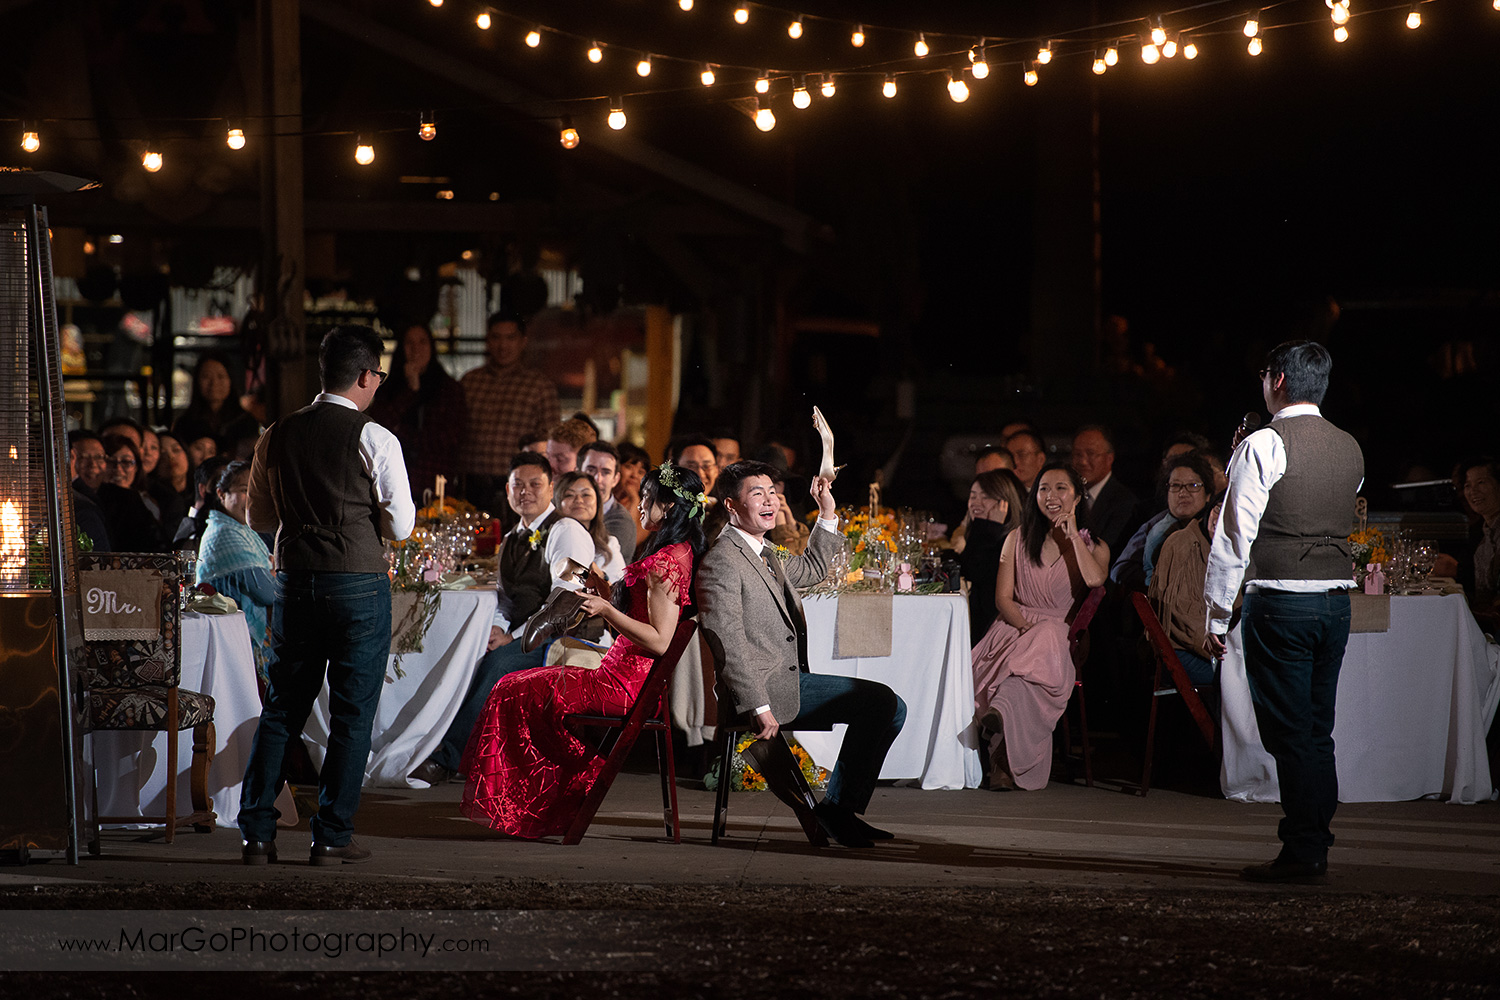 groom and bride in red dress playing shoe game during wedding reception at Long Branch Saloon & Farms in Half Moon Bay